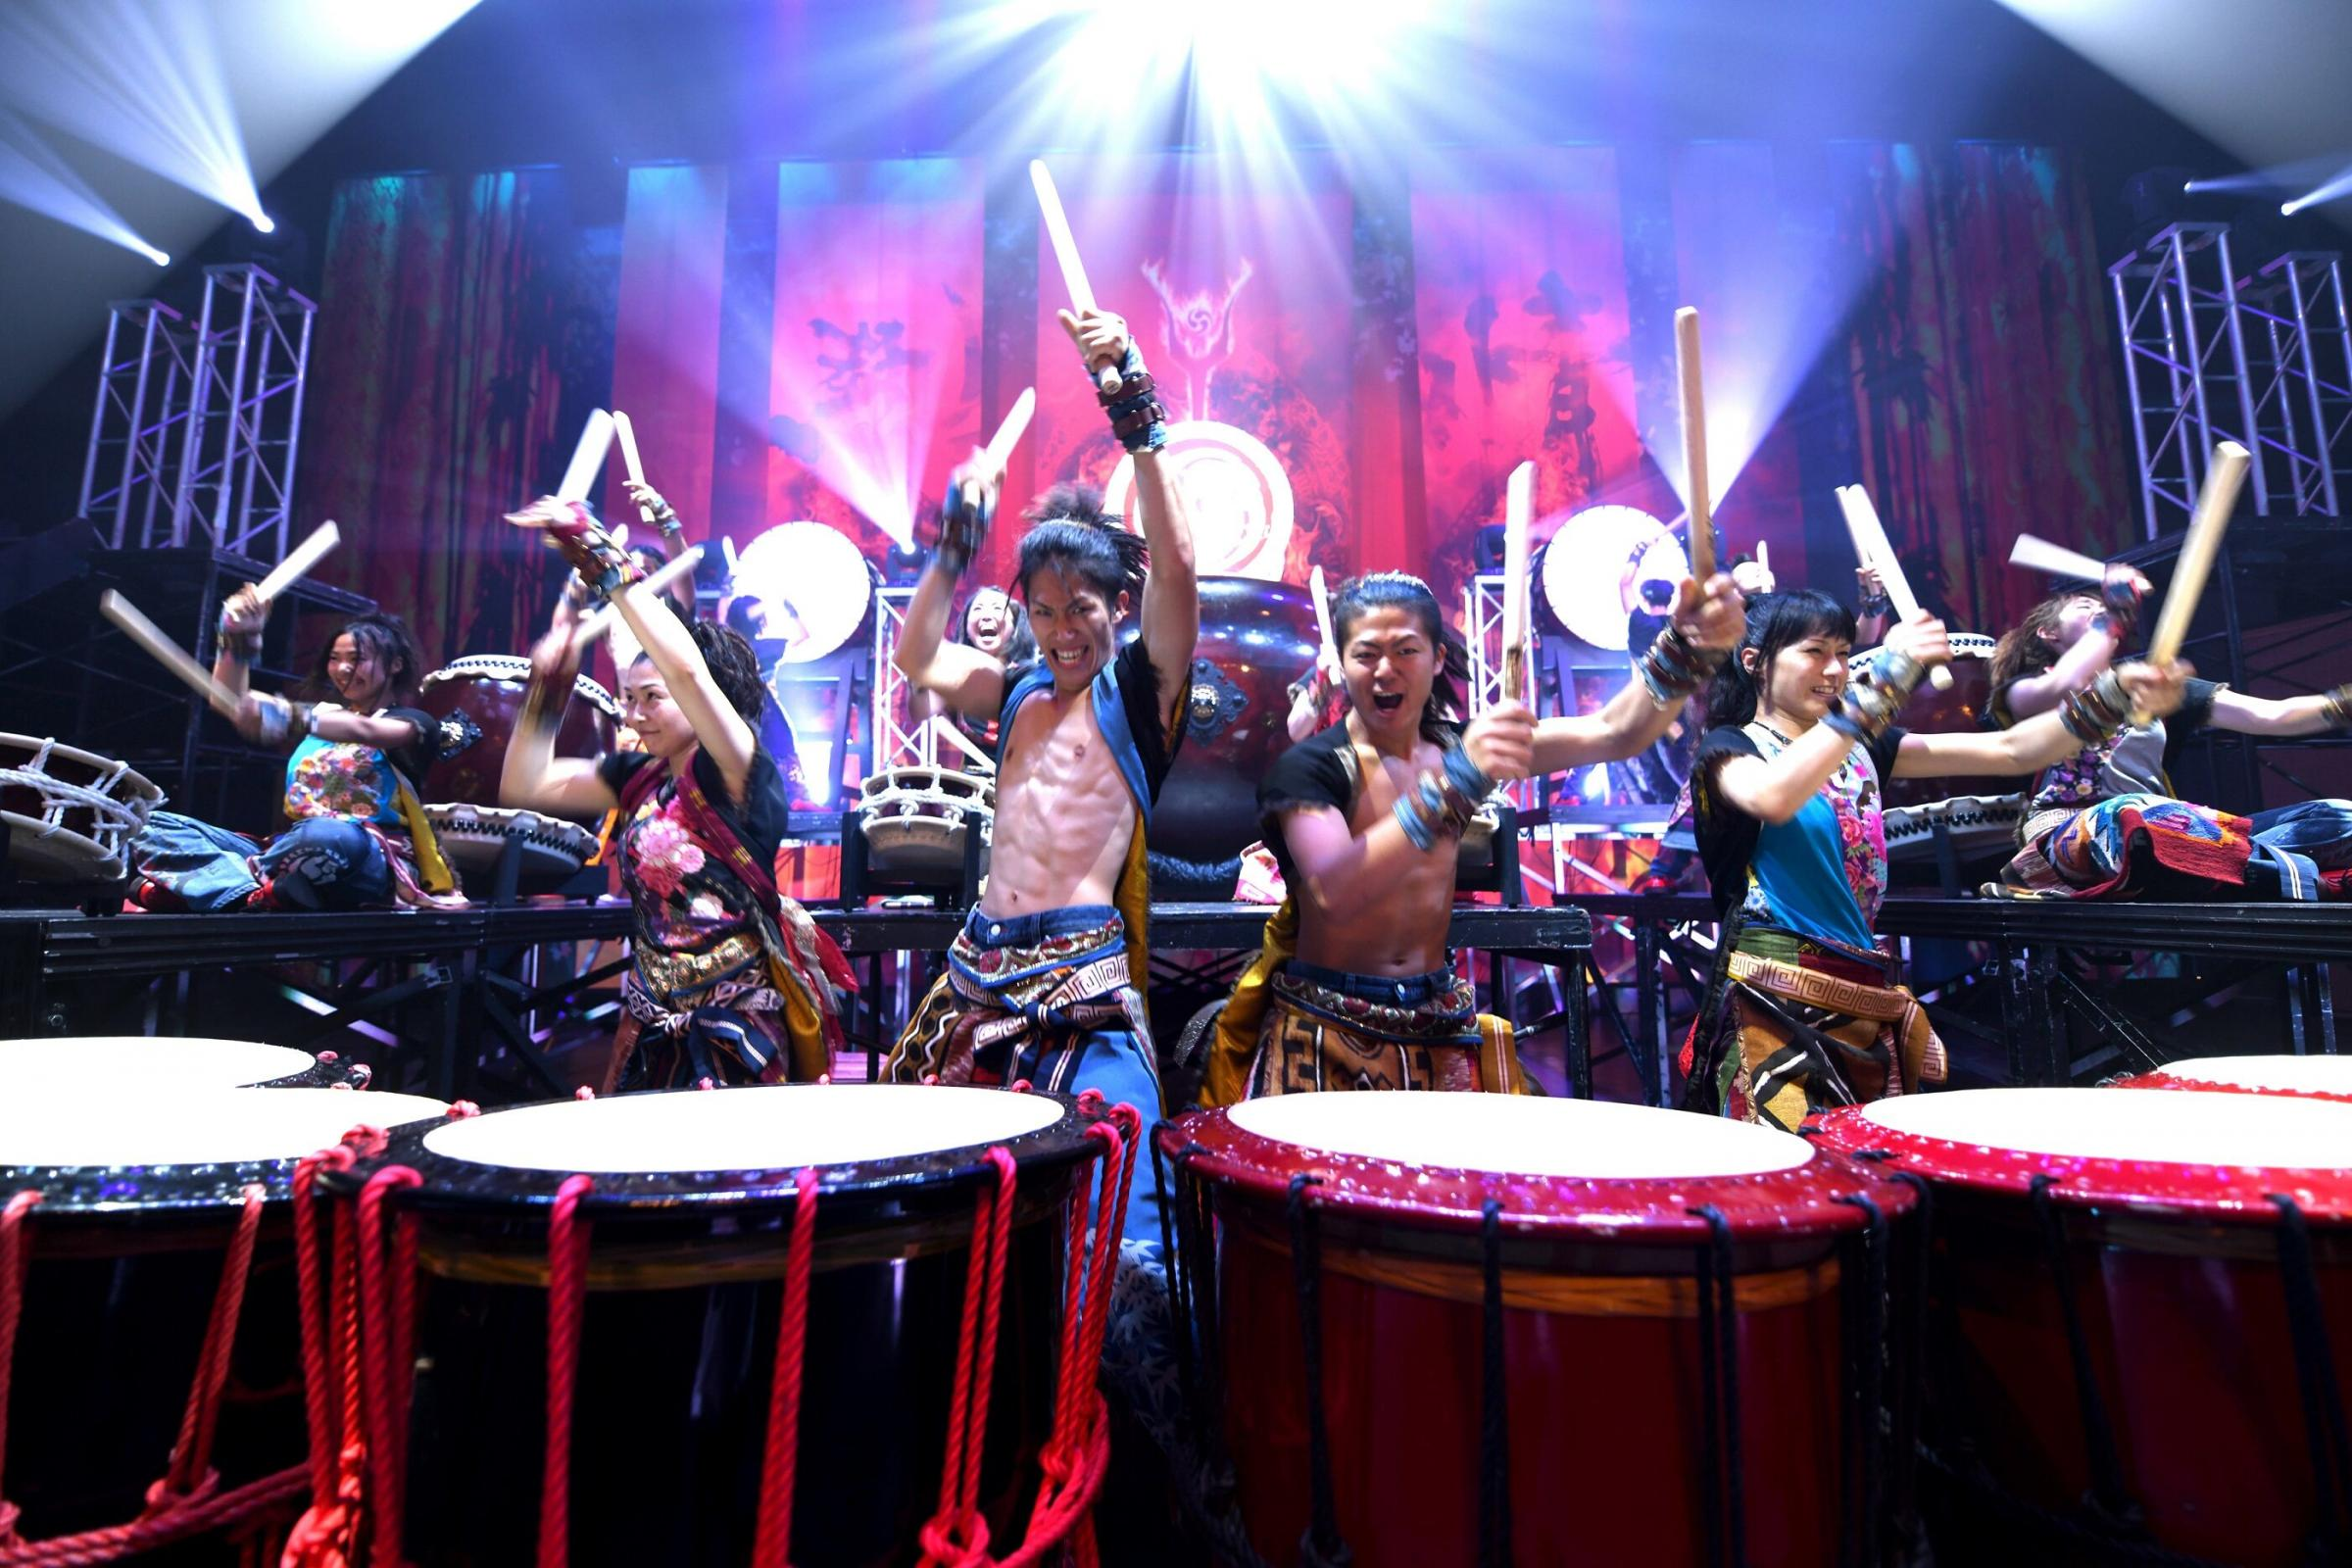 HIT THE BEAT: The Yamato Drummers in action.